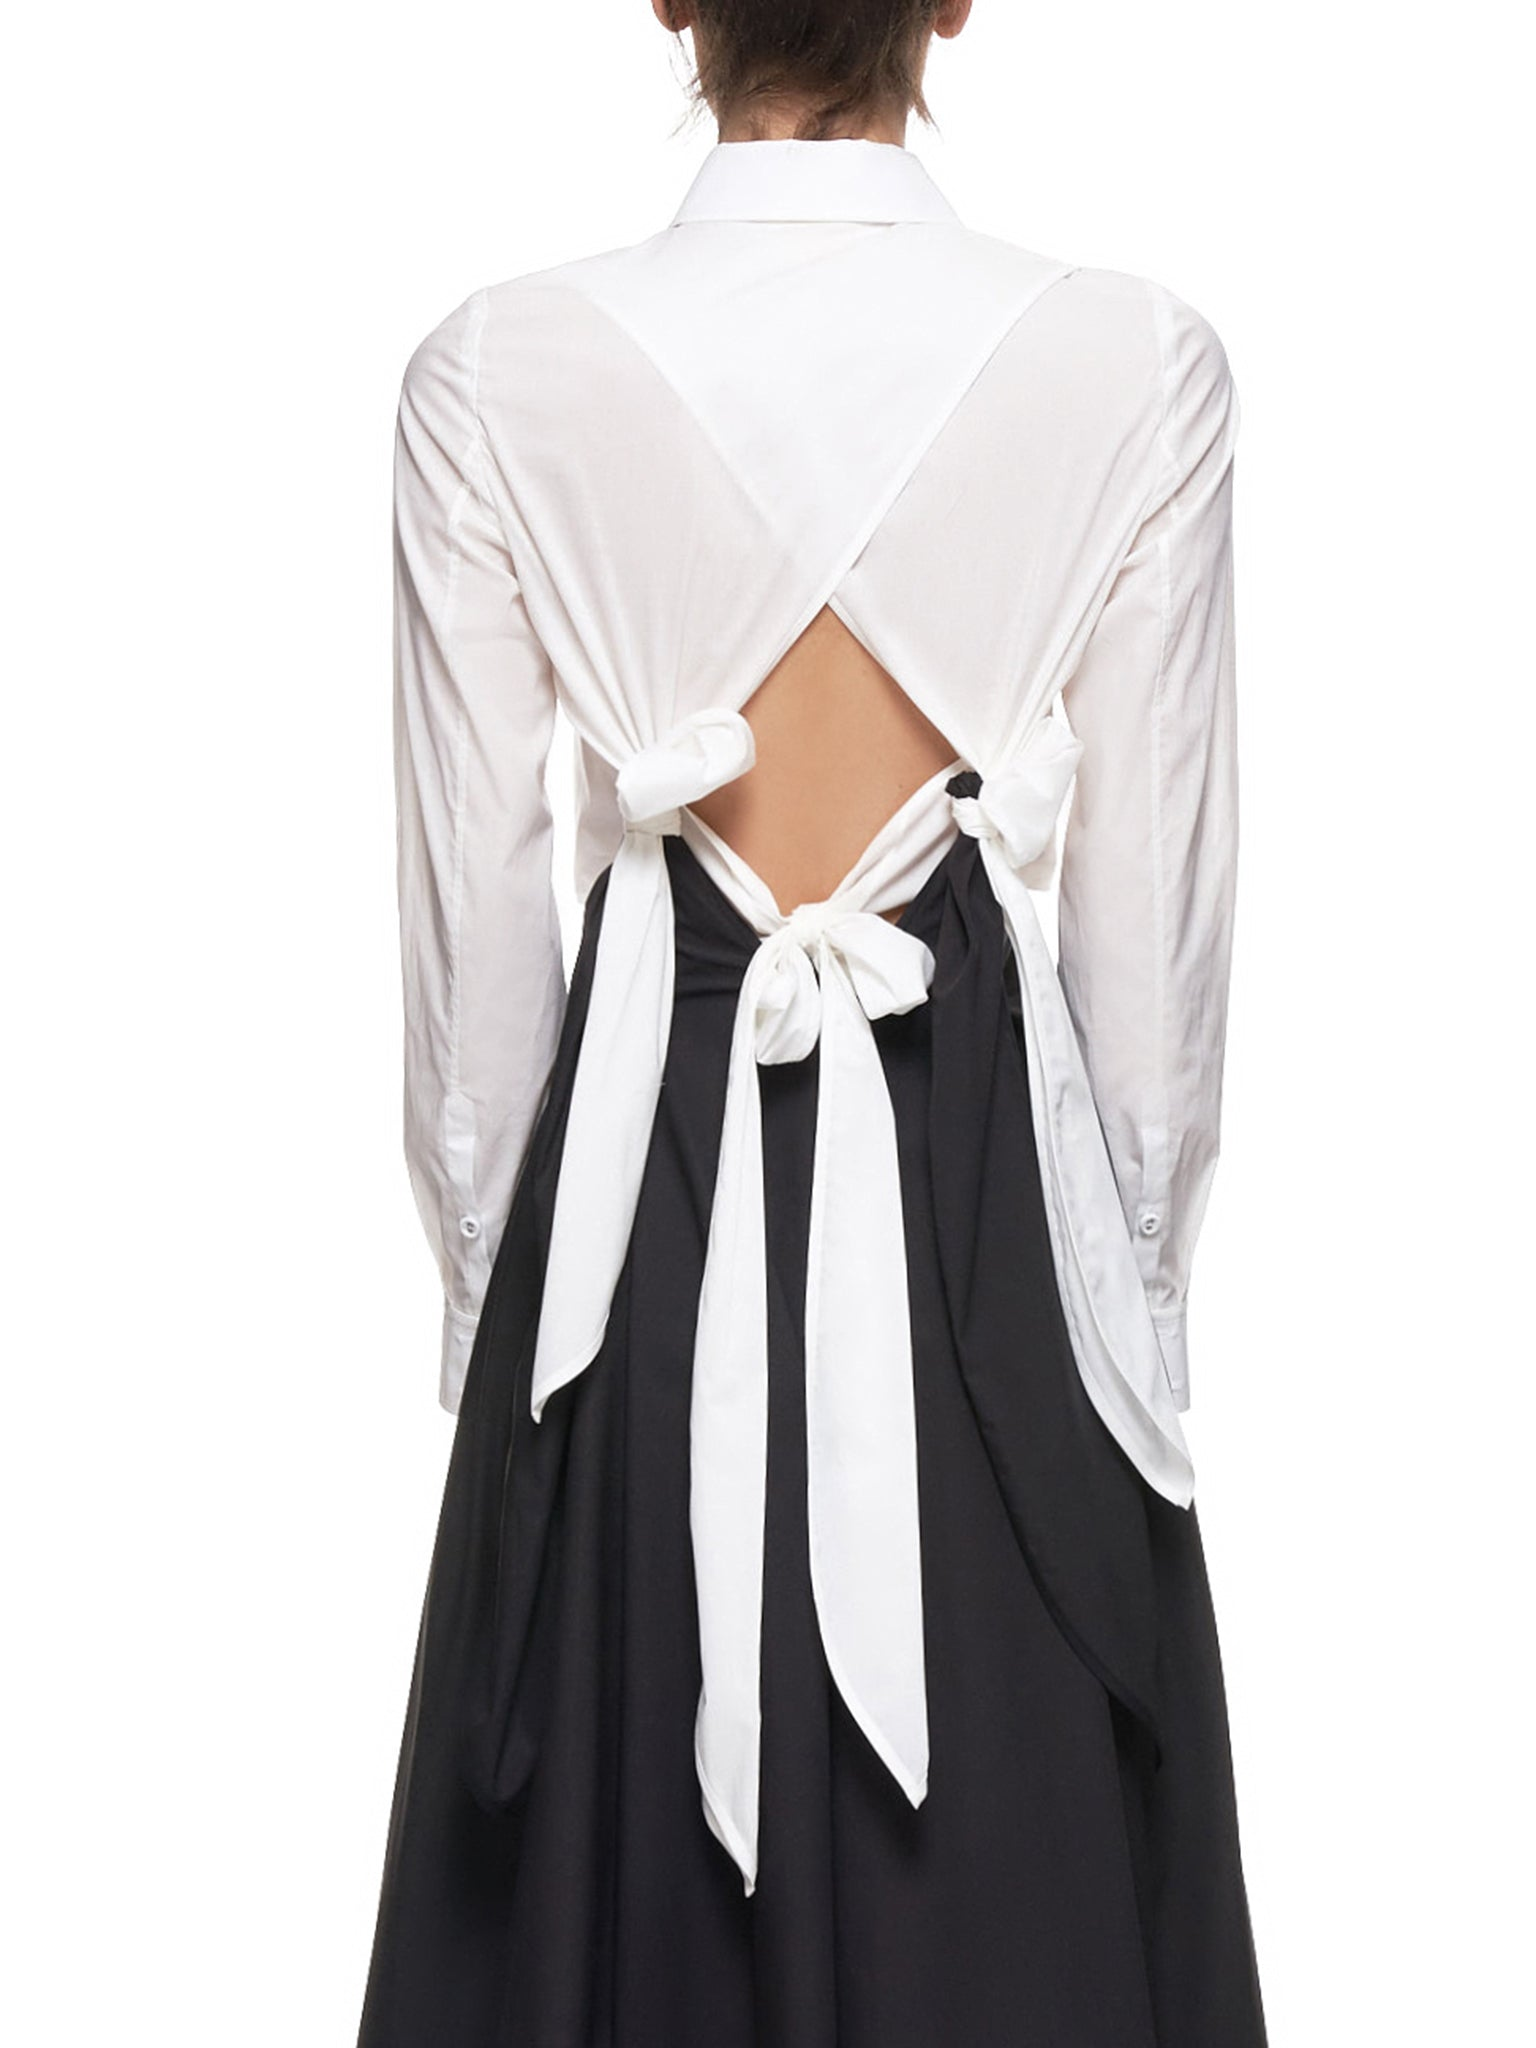 'Daris Dress' (WD06-BLACK-WHITE)